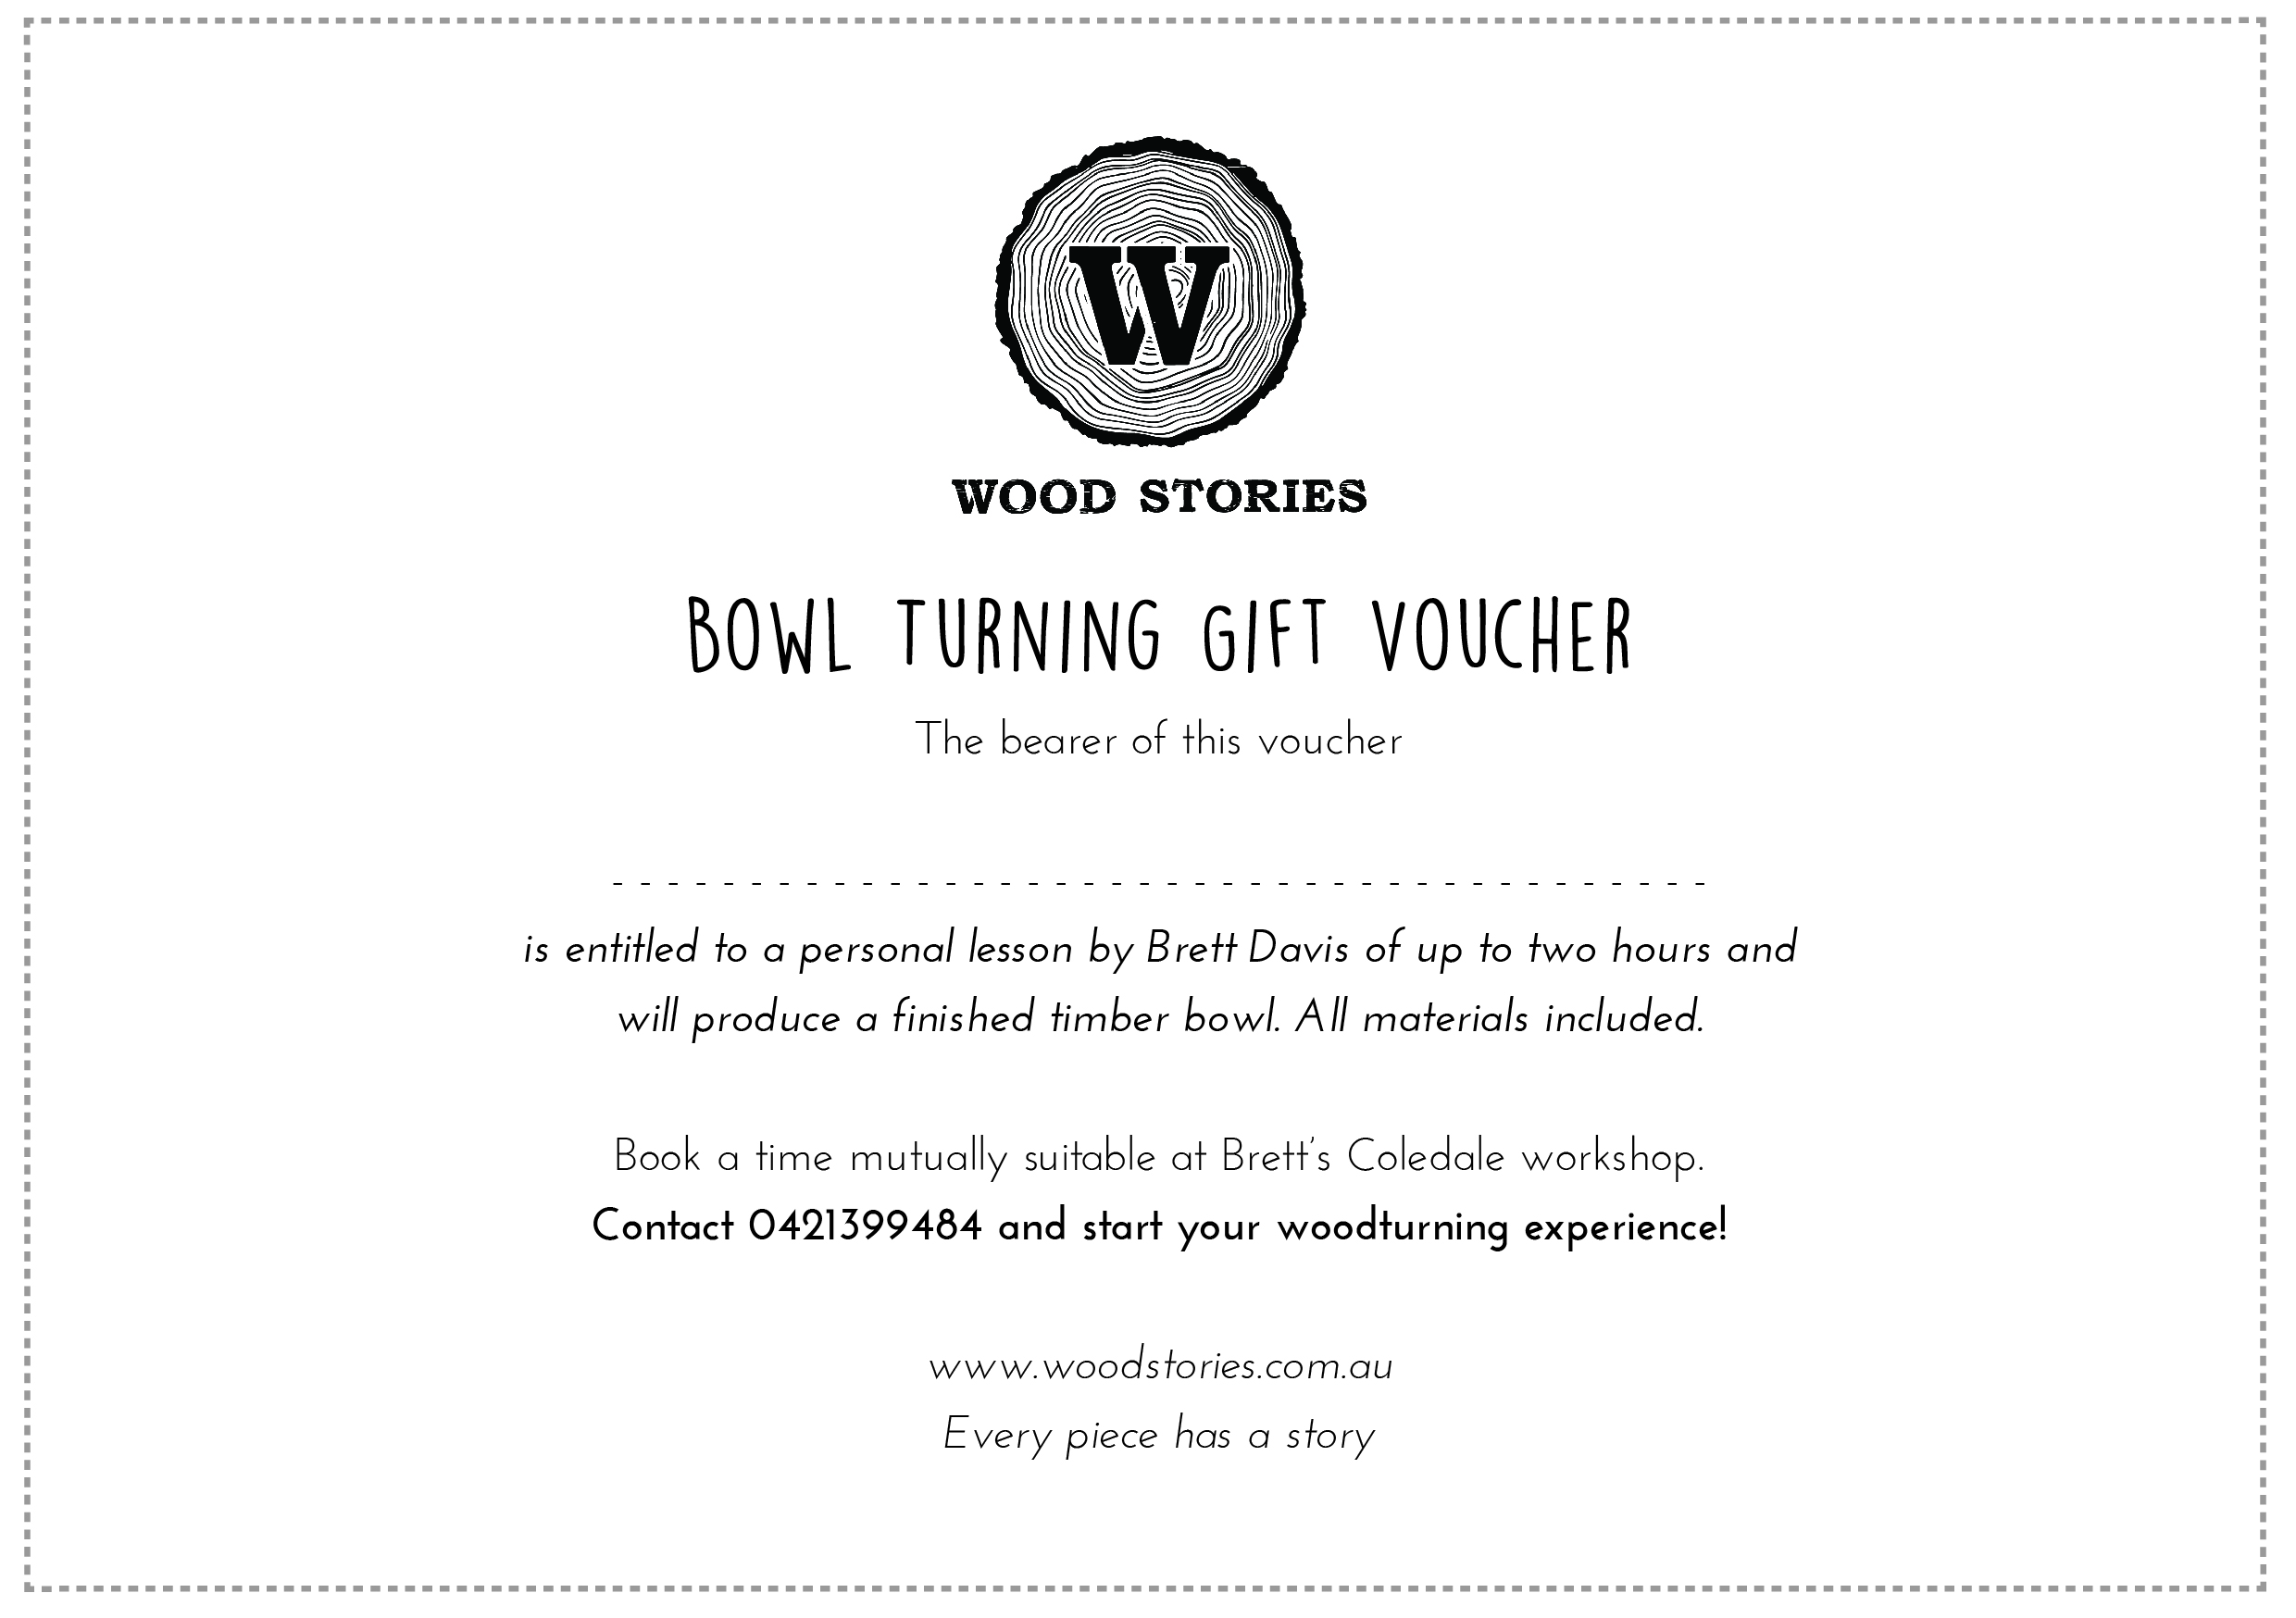 GIFT VOUCHER bowl turning.jpg